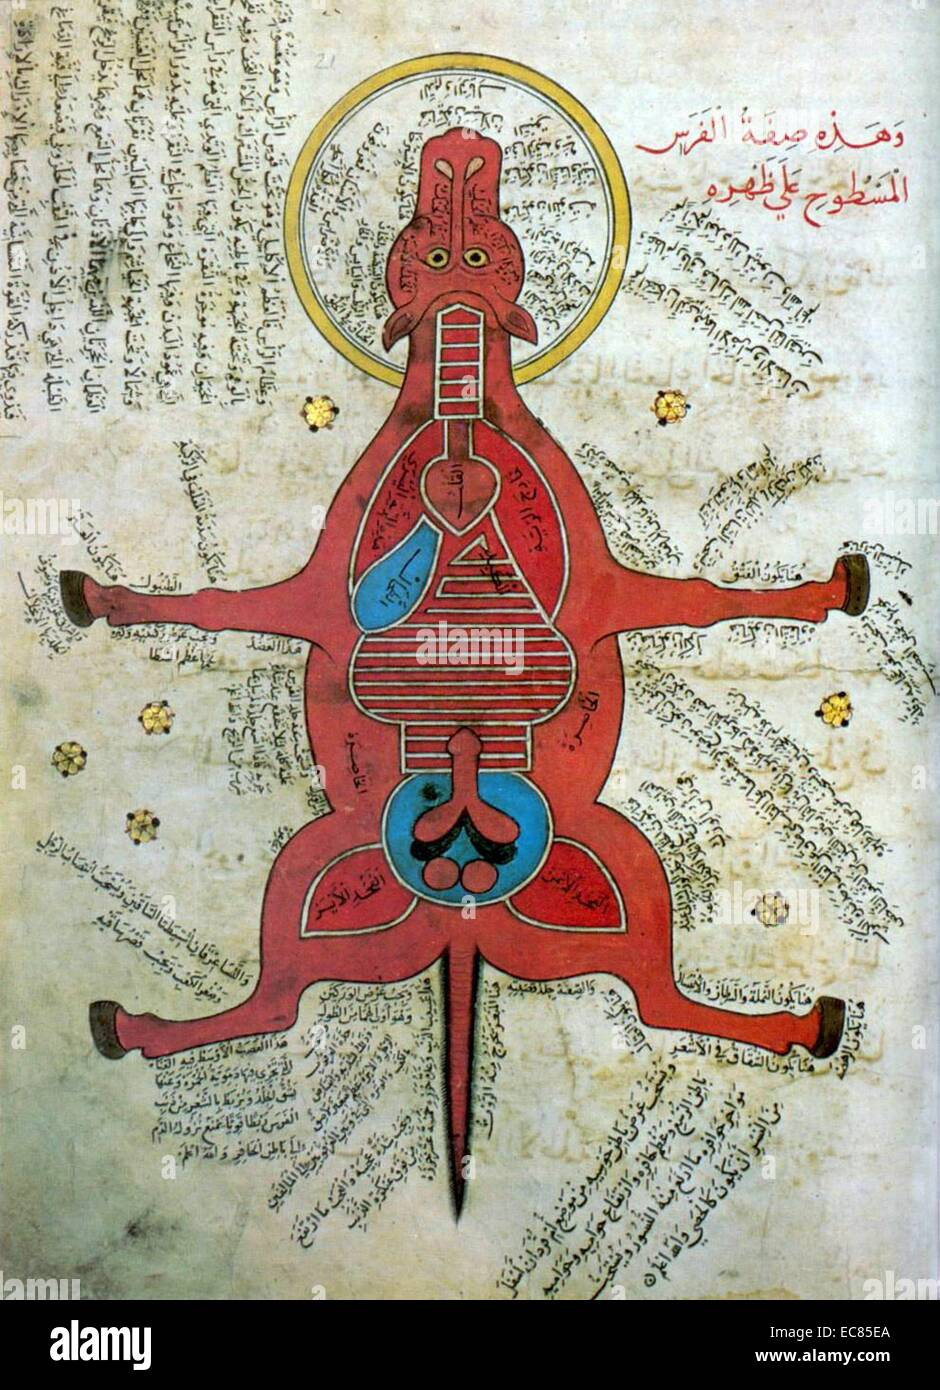 Islamic anatomy of a horse from an Egyptian manuscript. Dated 15th Century - Stock Image